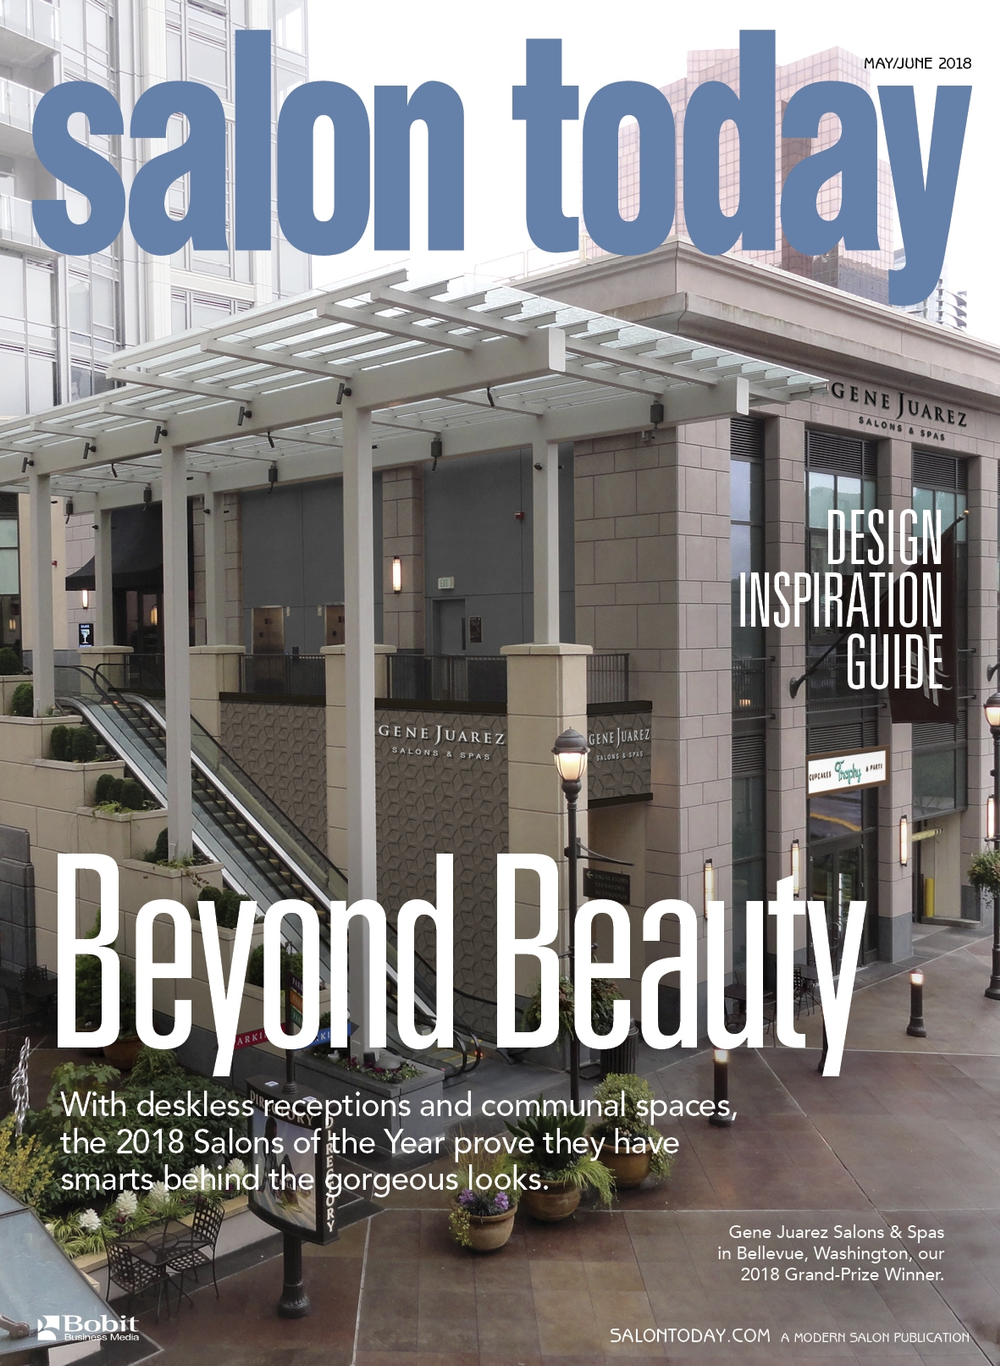 The May/June cover of Salon Today shows the exterior of the Grand Prize winner Gene Juarez Salon and Spa in Bellevue, Washington.